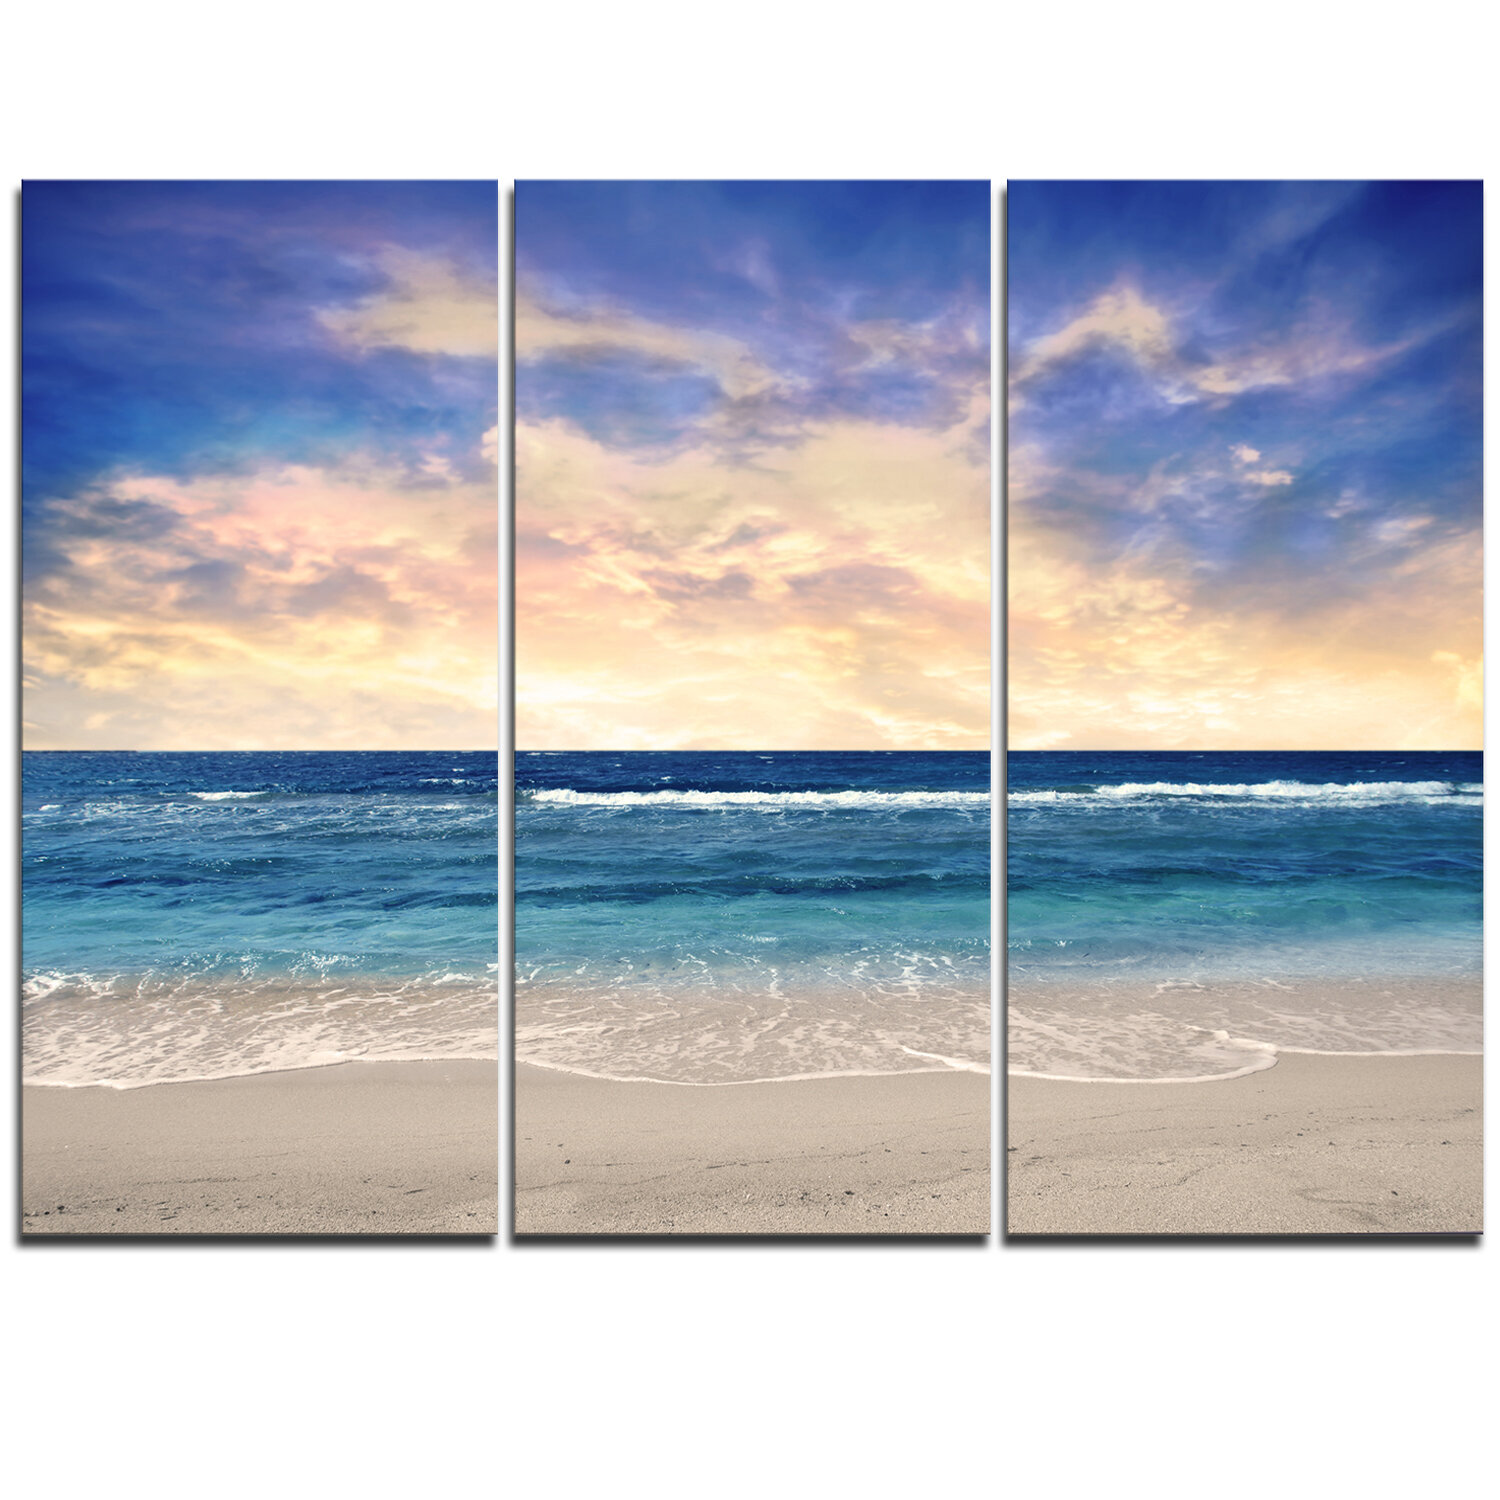 Designart Clear Blue Sky And Ocean At Sunset 3 Piece Graphic Art On Wrapped Canvas Set Wayfair